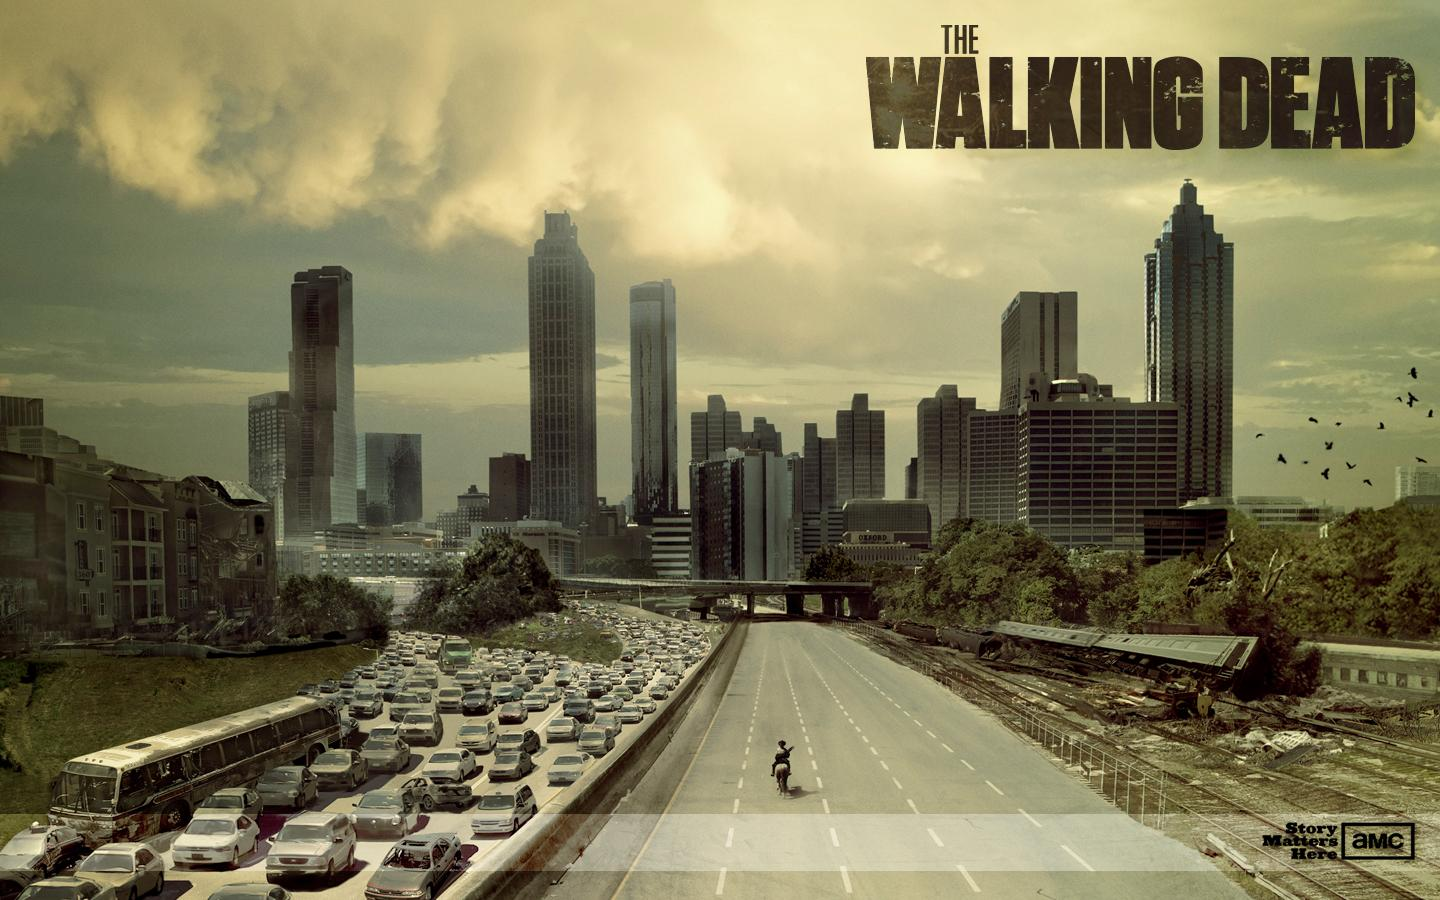 Previously on The Walking Dead...